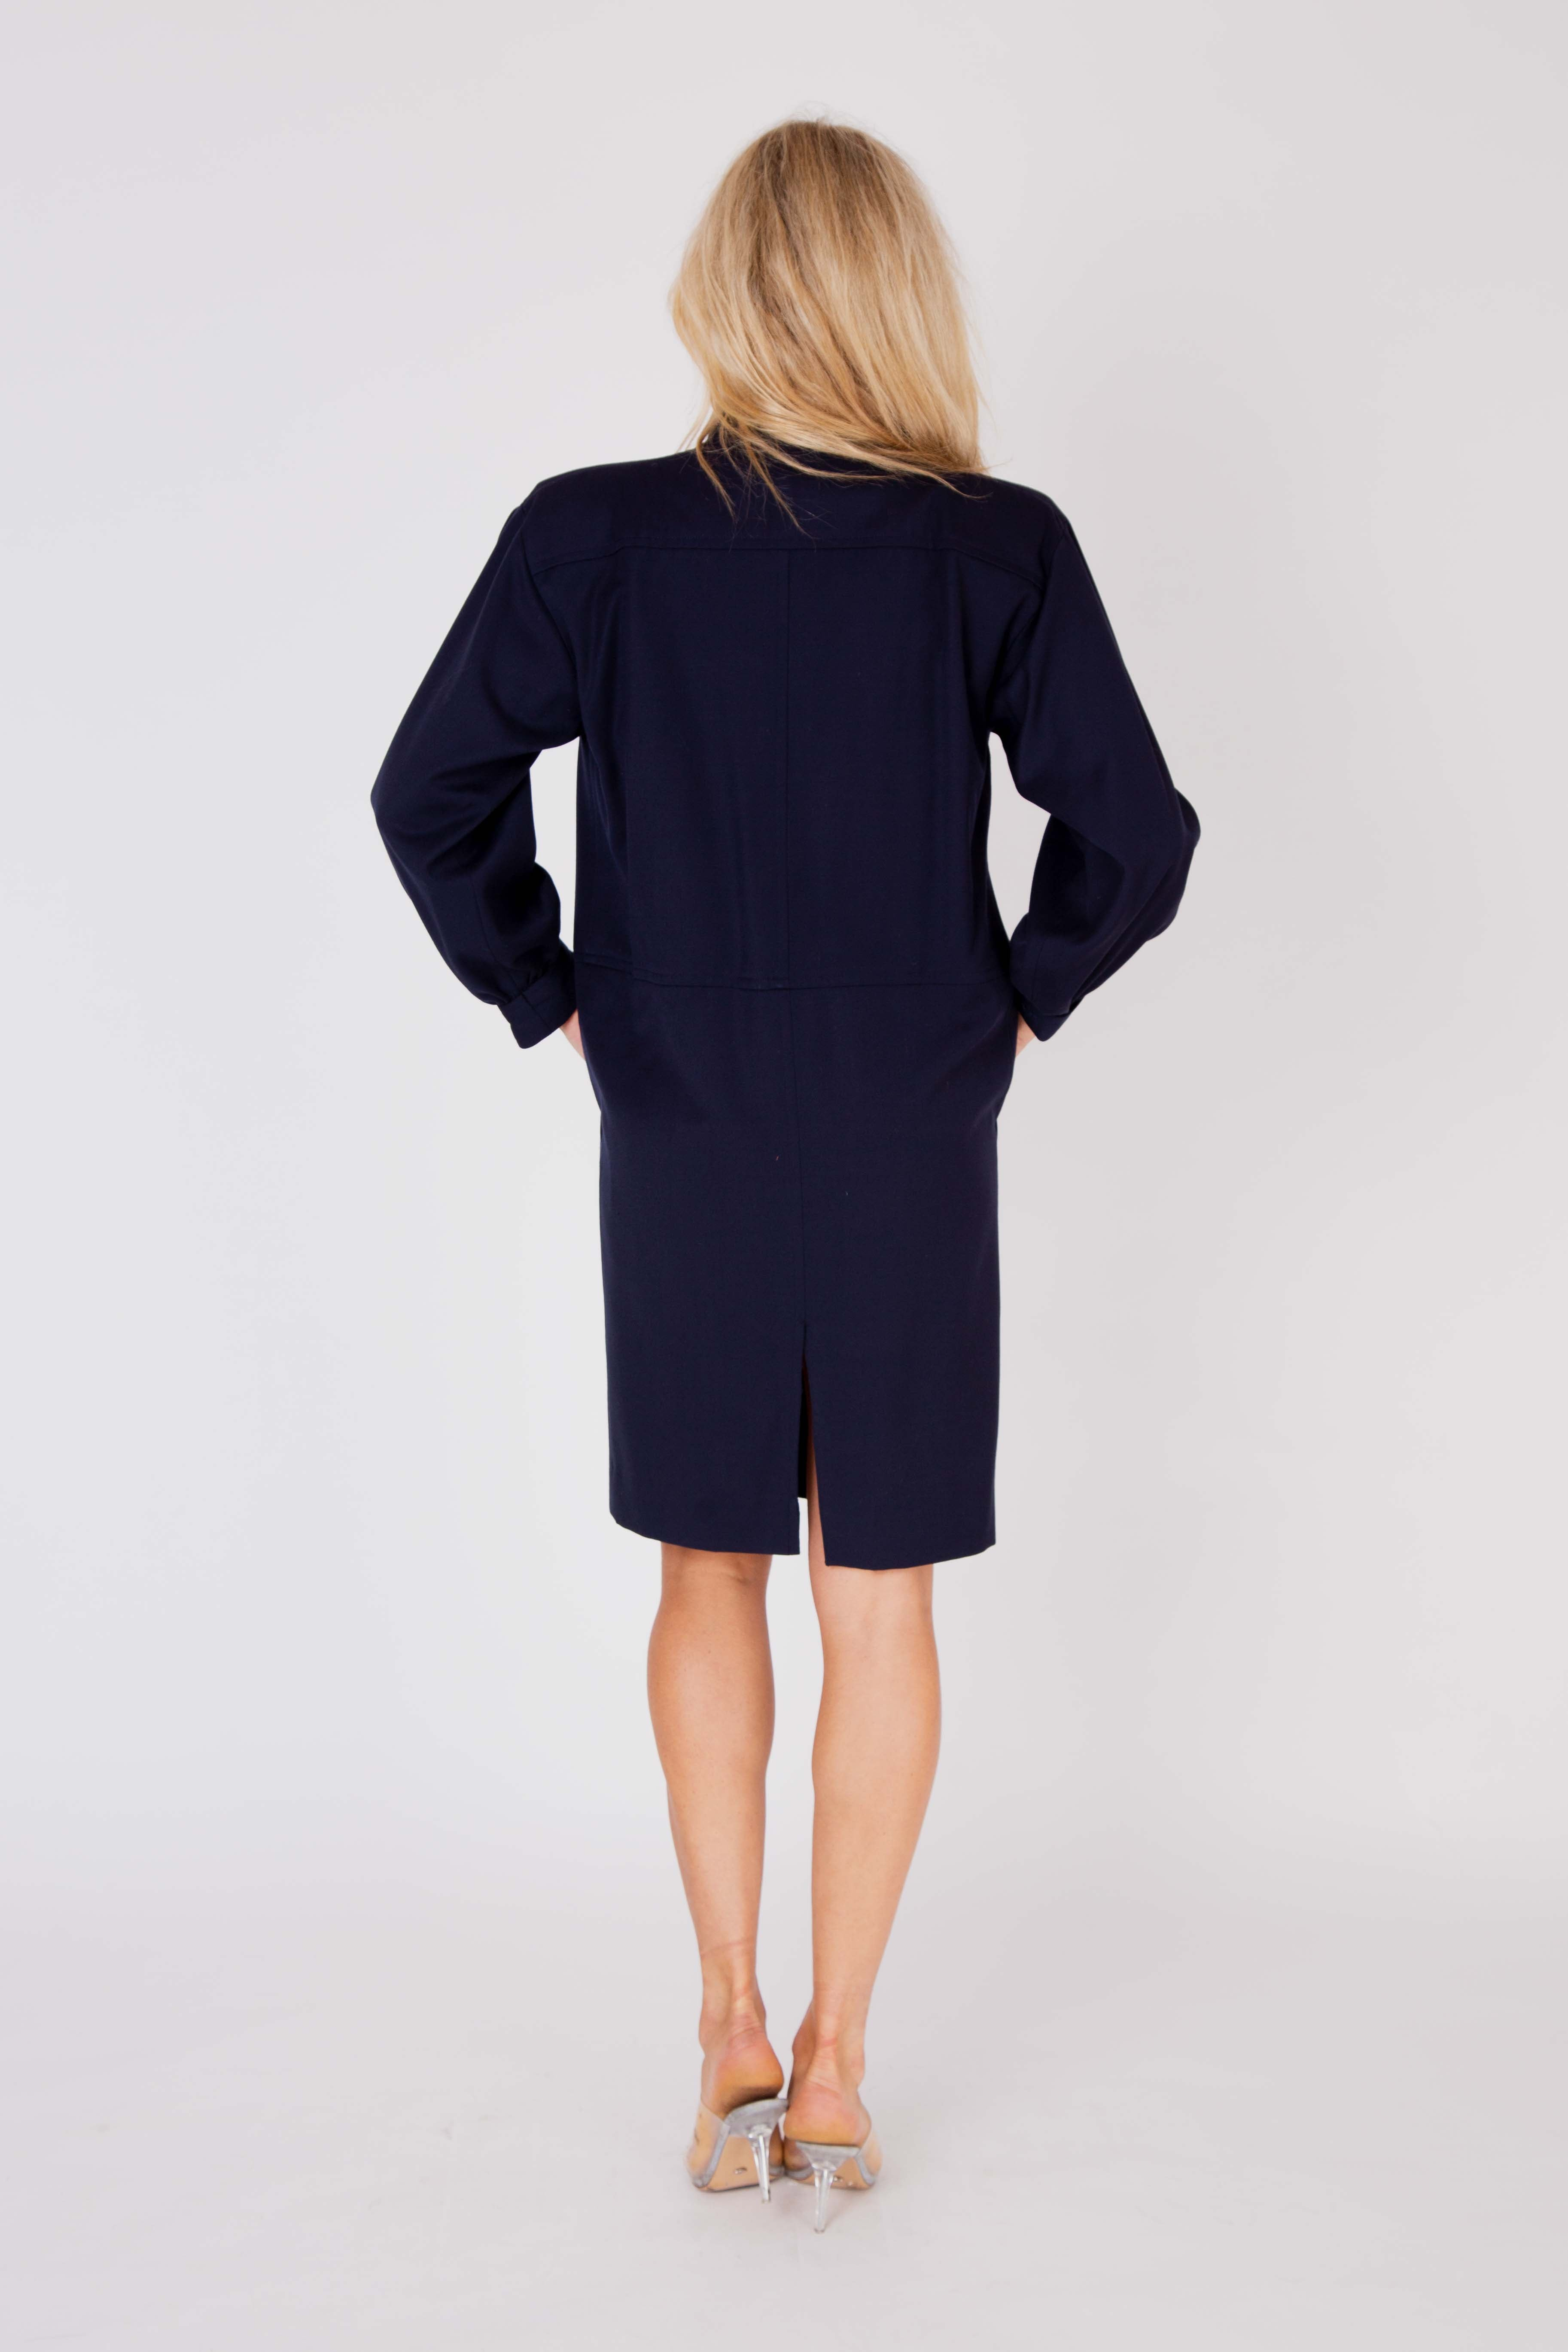 Yves Saint Laurent <br> 1980's wool strong shoulder tunic dress